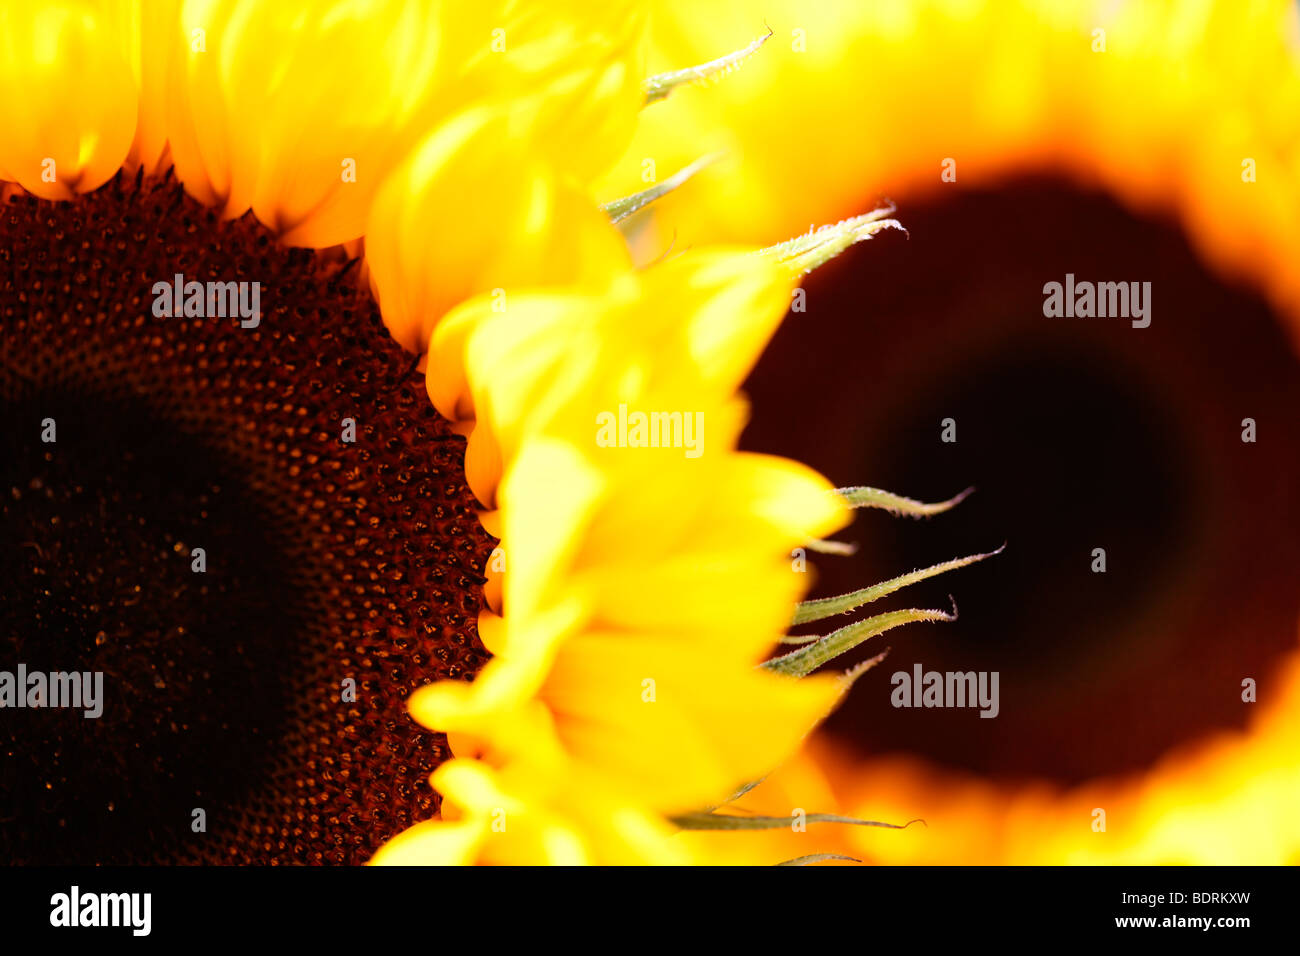 striking impressive sunflower heads - fine art photography Jane-Ann Butler Photography JABP584 - Stock Image